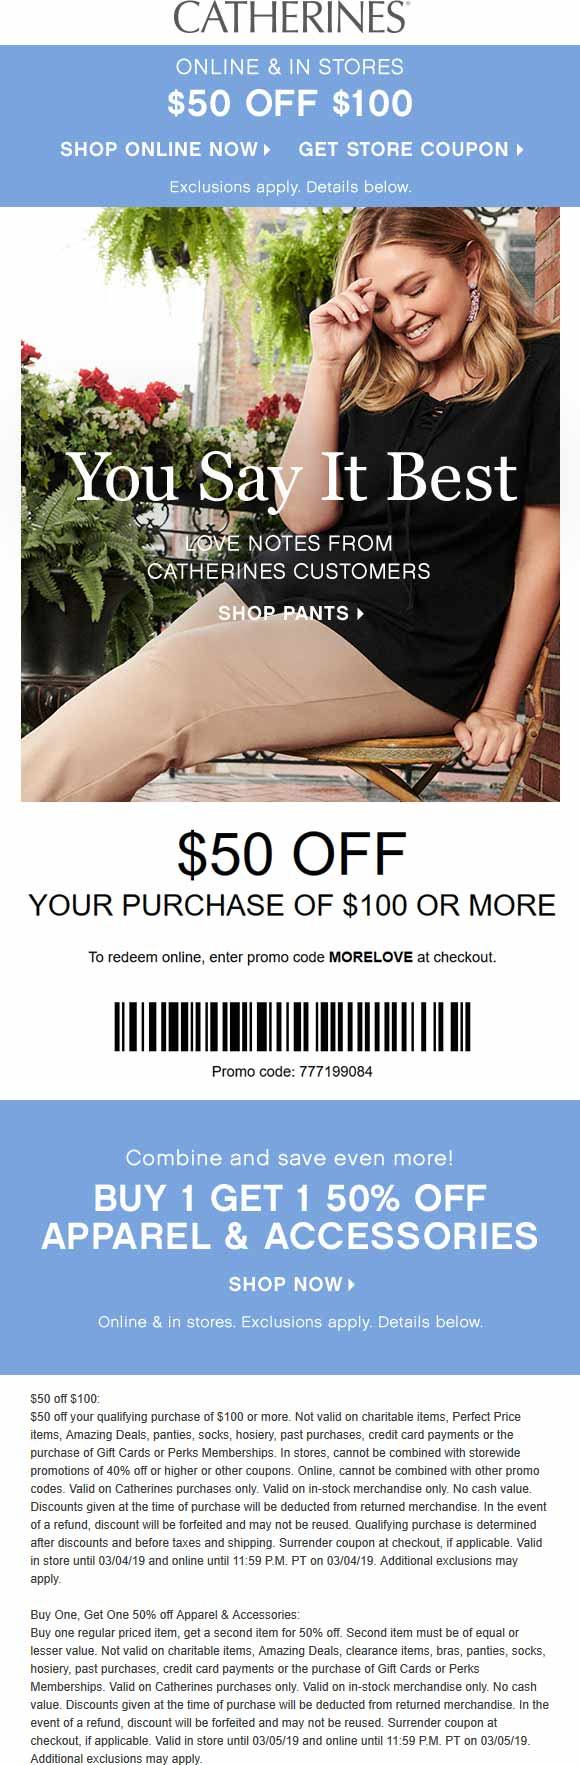 Catherines coupons & promo code for [April 2020]